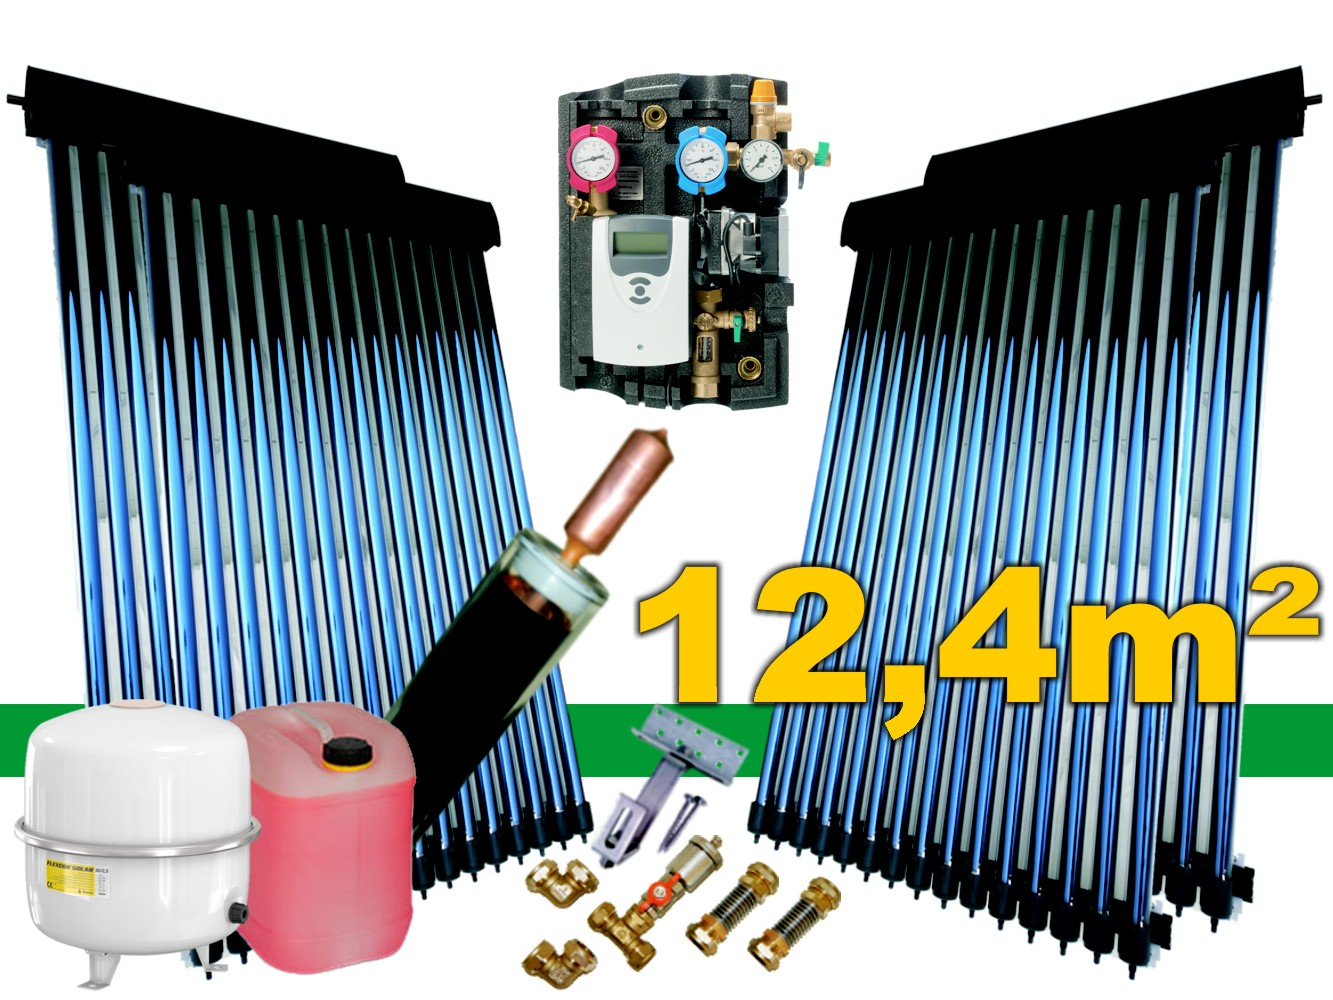 solaranlage komplettpaket r hren kollektor bafa 12 4 m mit 24mm power heatpipe. Black Bedroom Furniture Sets. Home Design Ideas